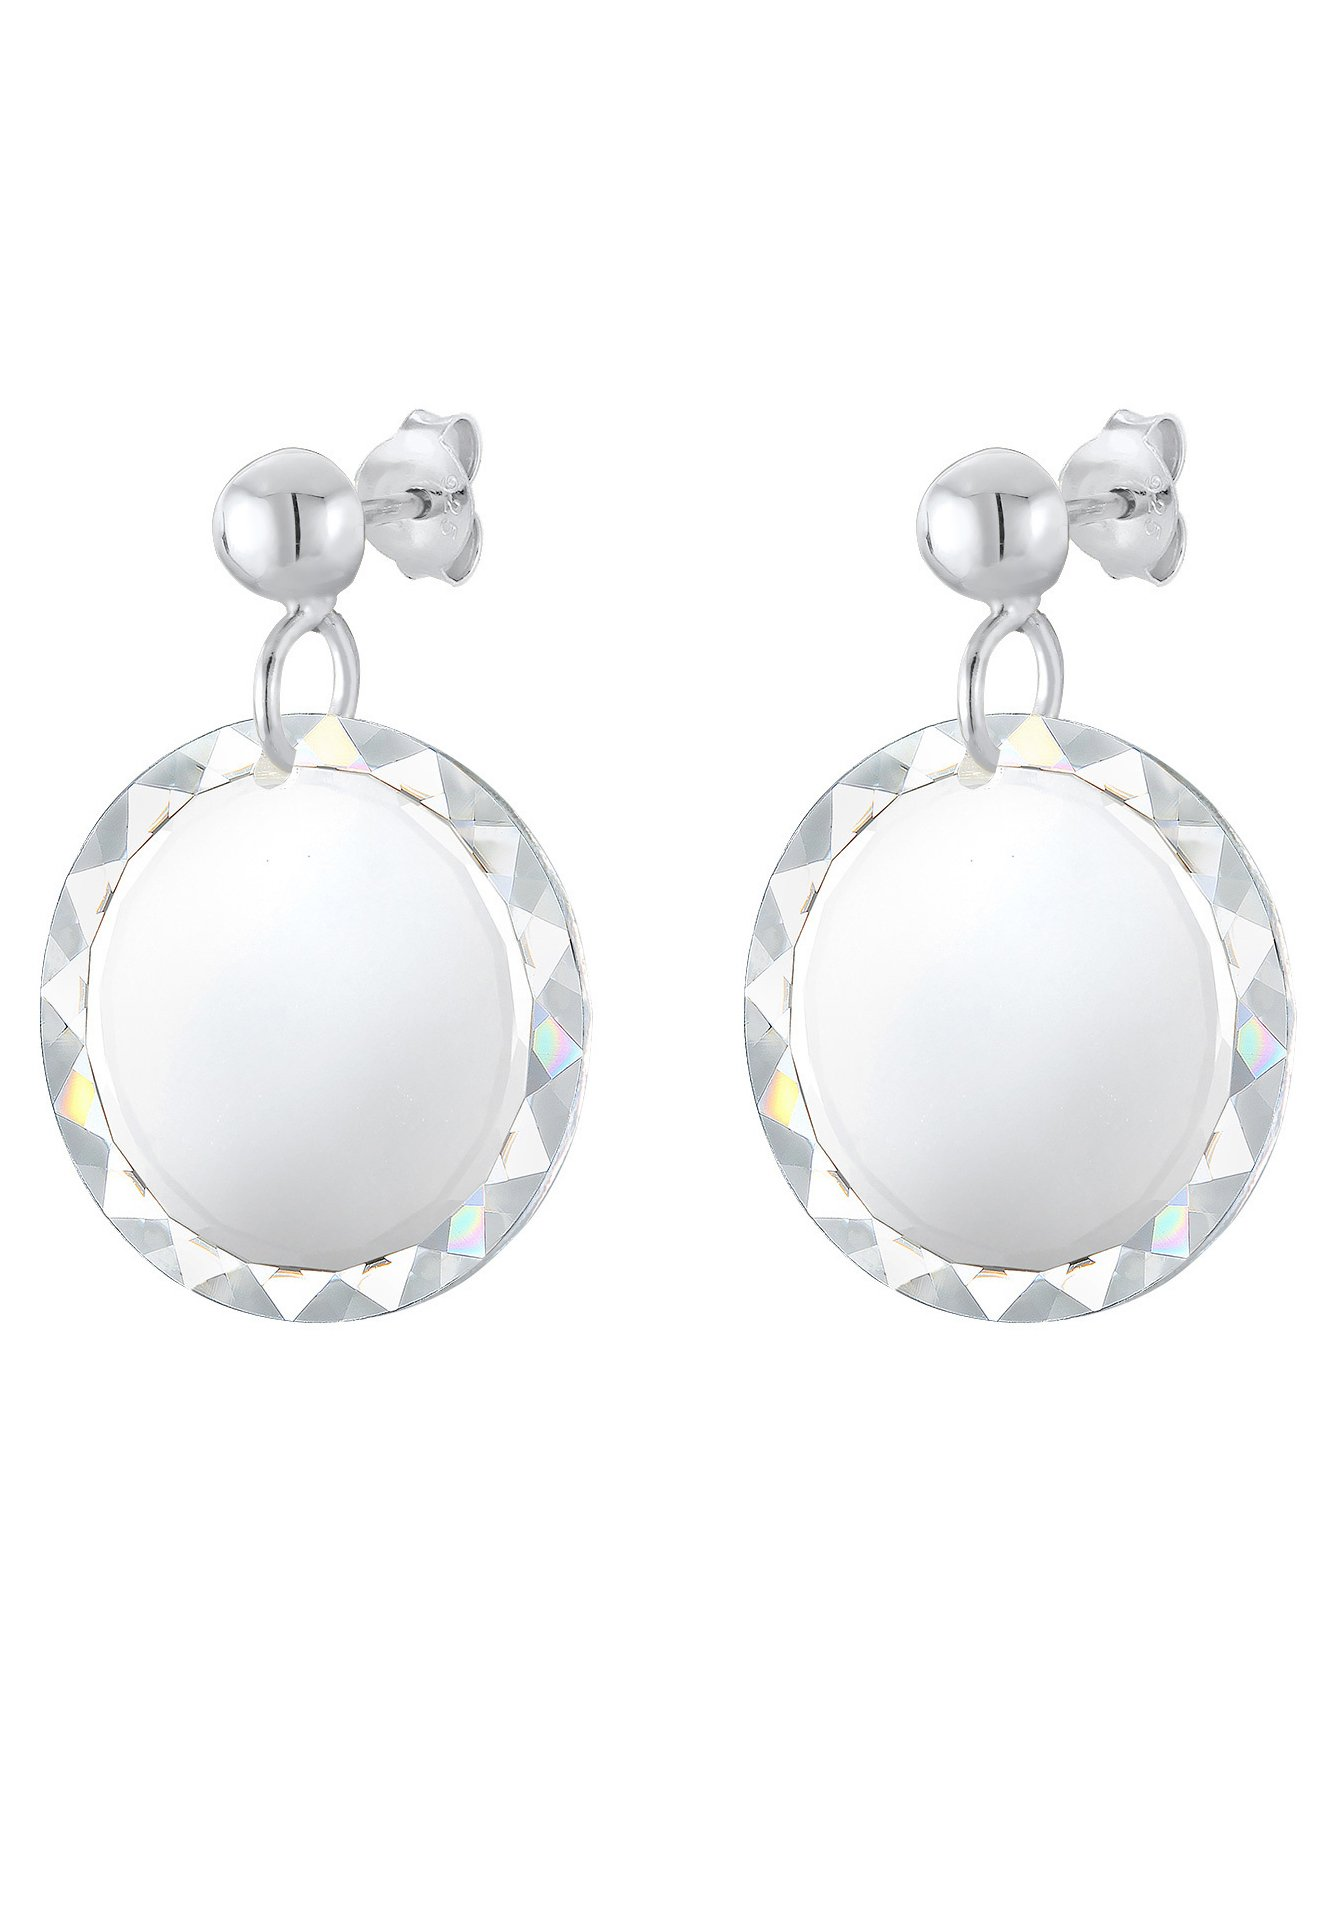 Low Price Sale New Release Accessories Elli Earrings silver-coloured MMIt0vRxB mM821dMFs